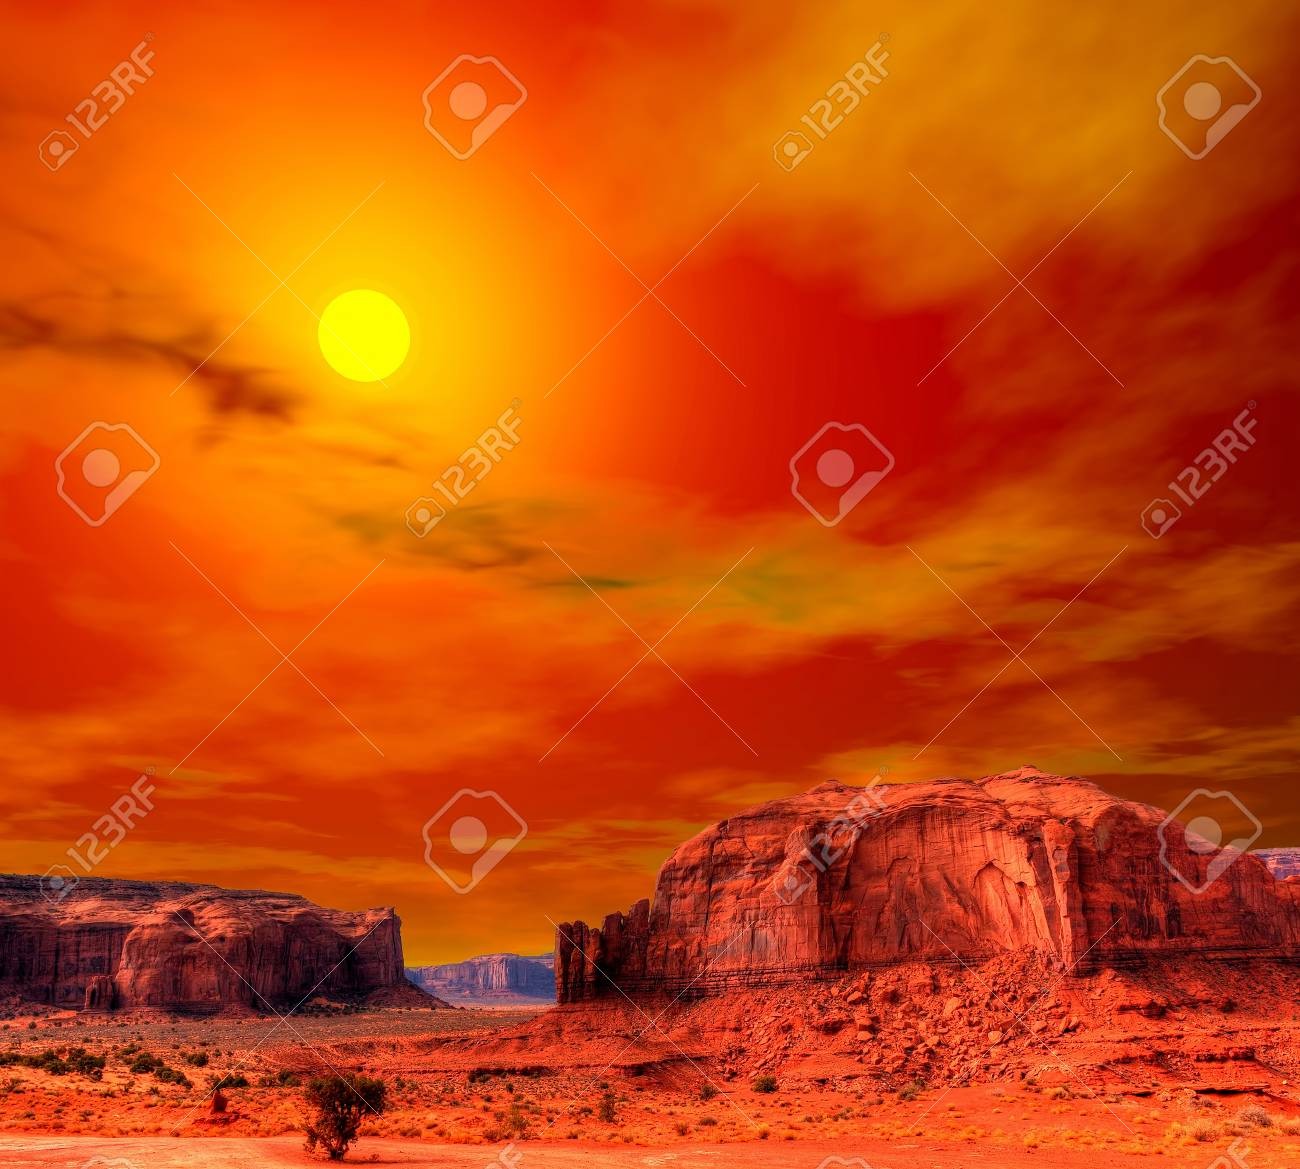 Sunset Monument Valley Arizona With Evening Warm Skies Stock Photo Picture And Royalty Free Image Image 34436594